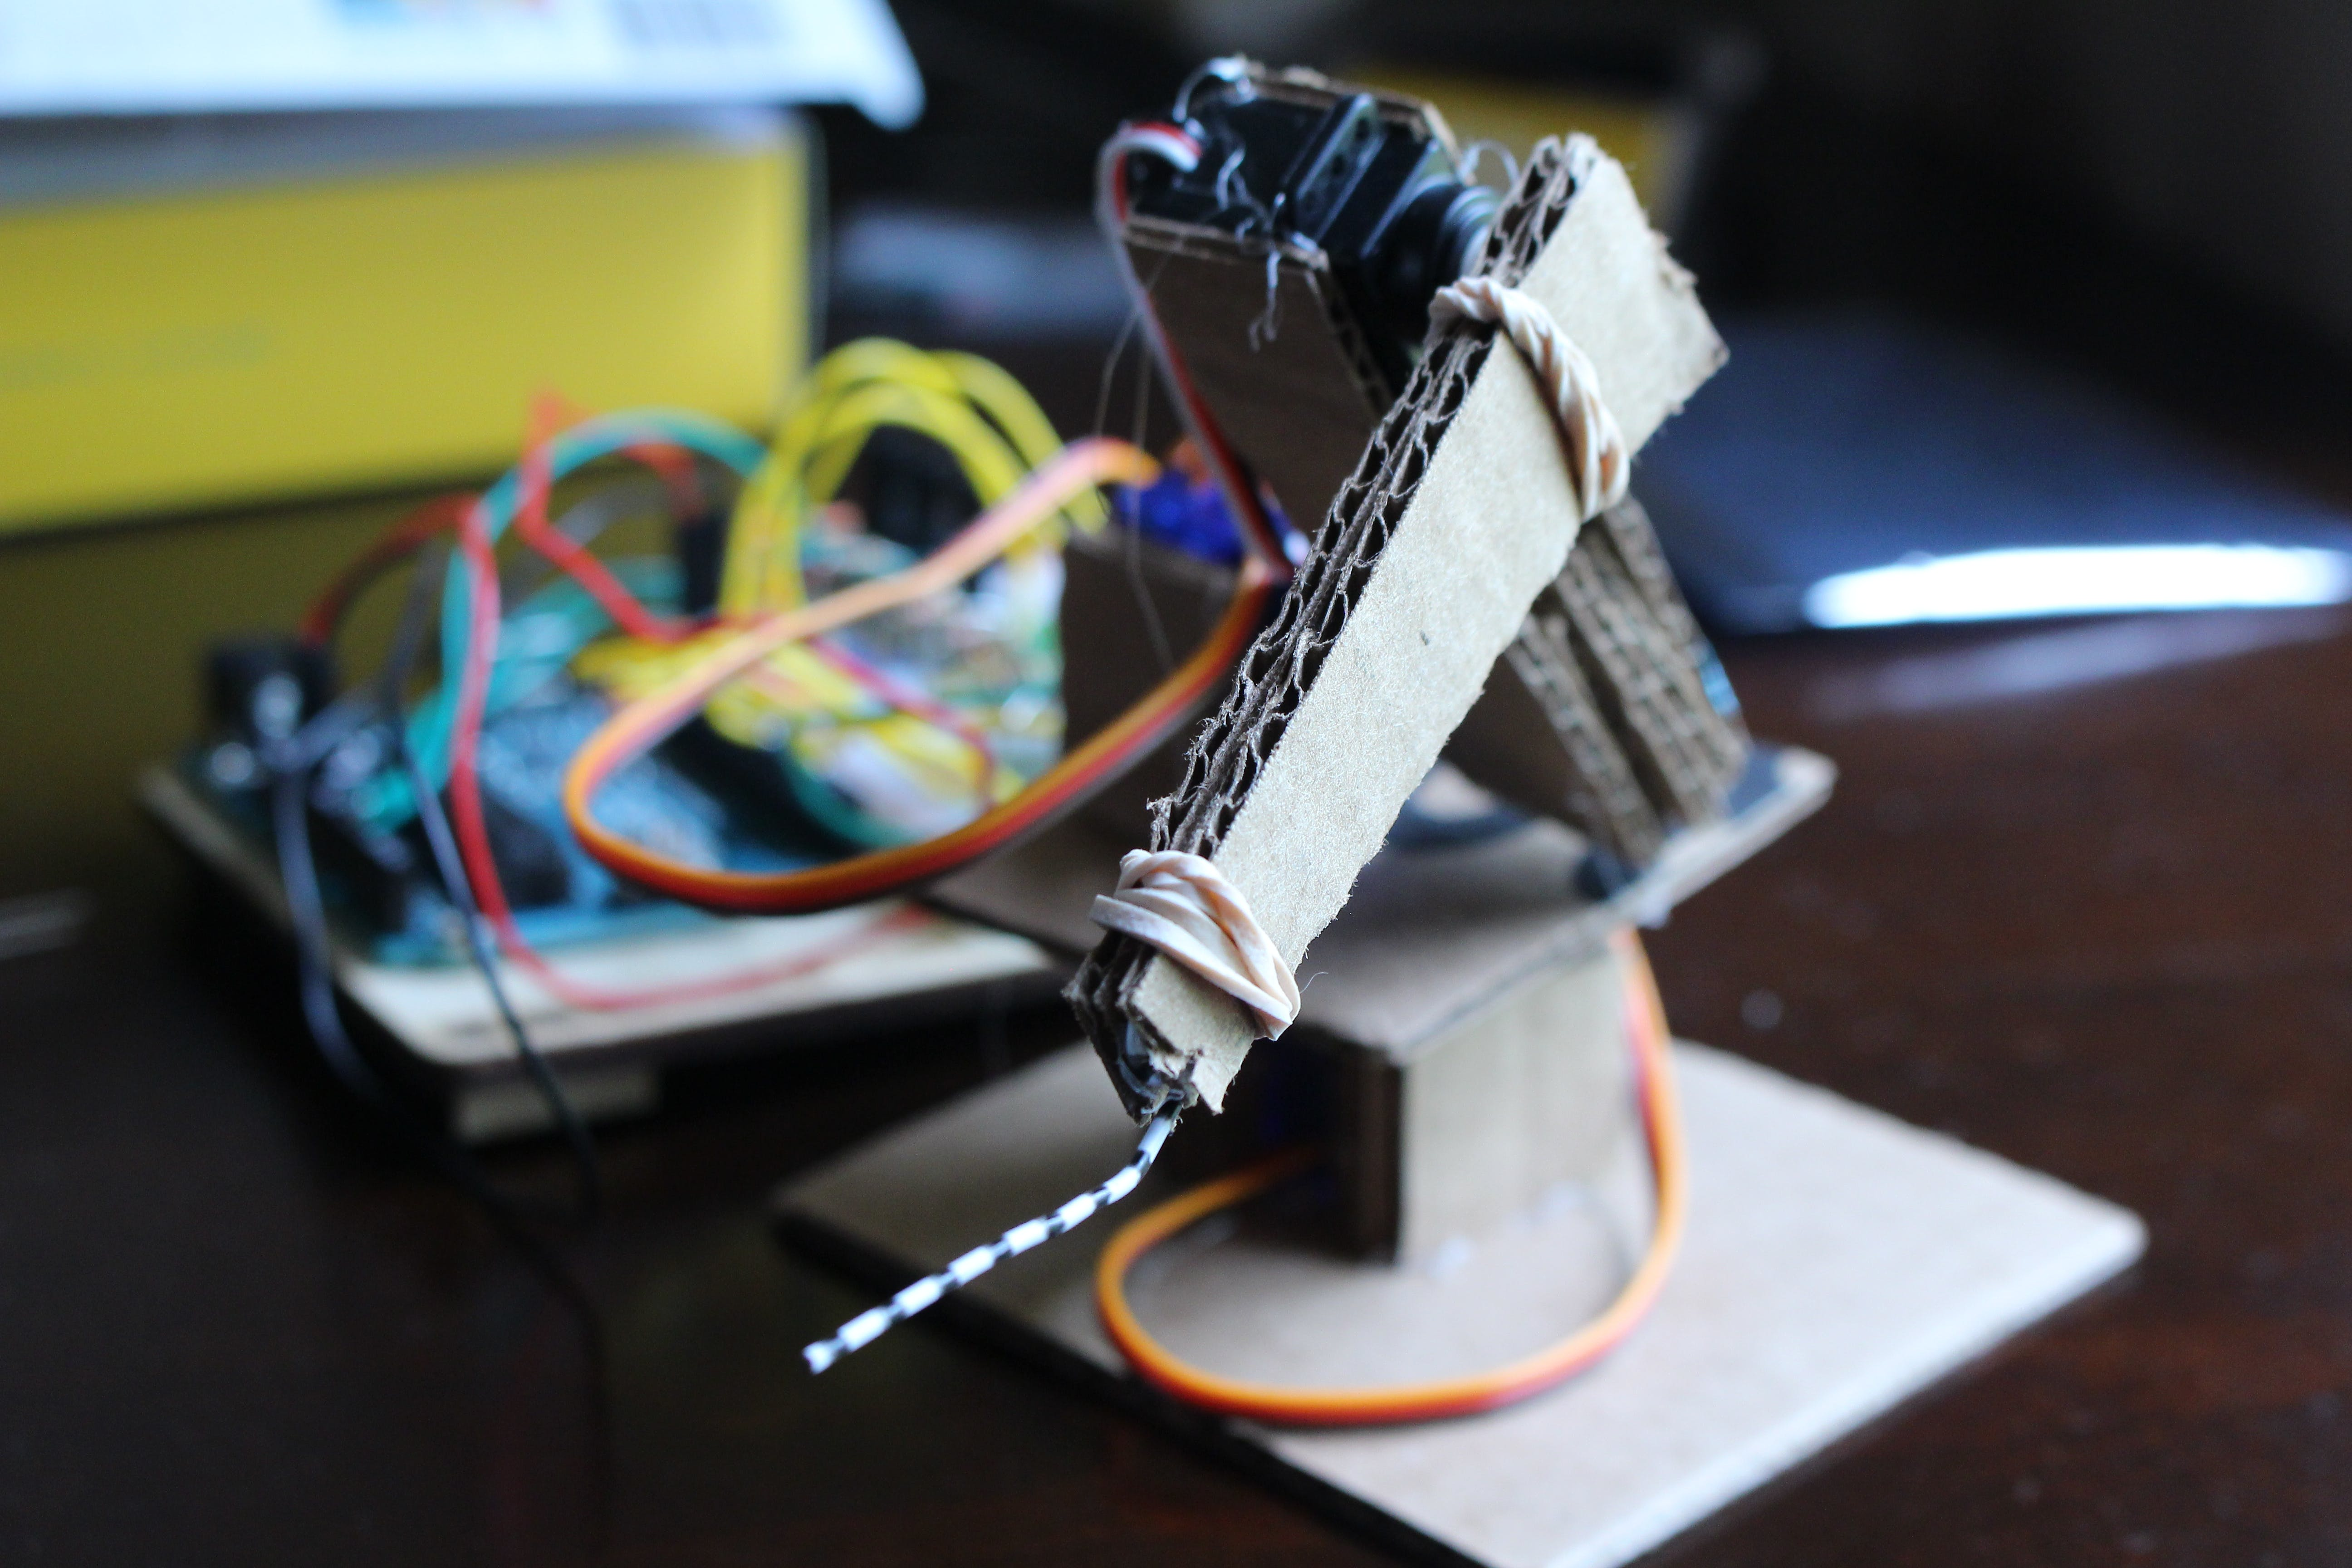 Simple Programmable Robotic Arm